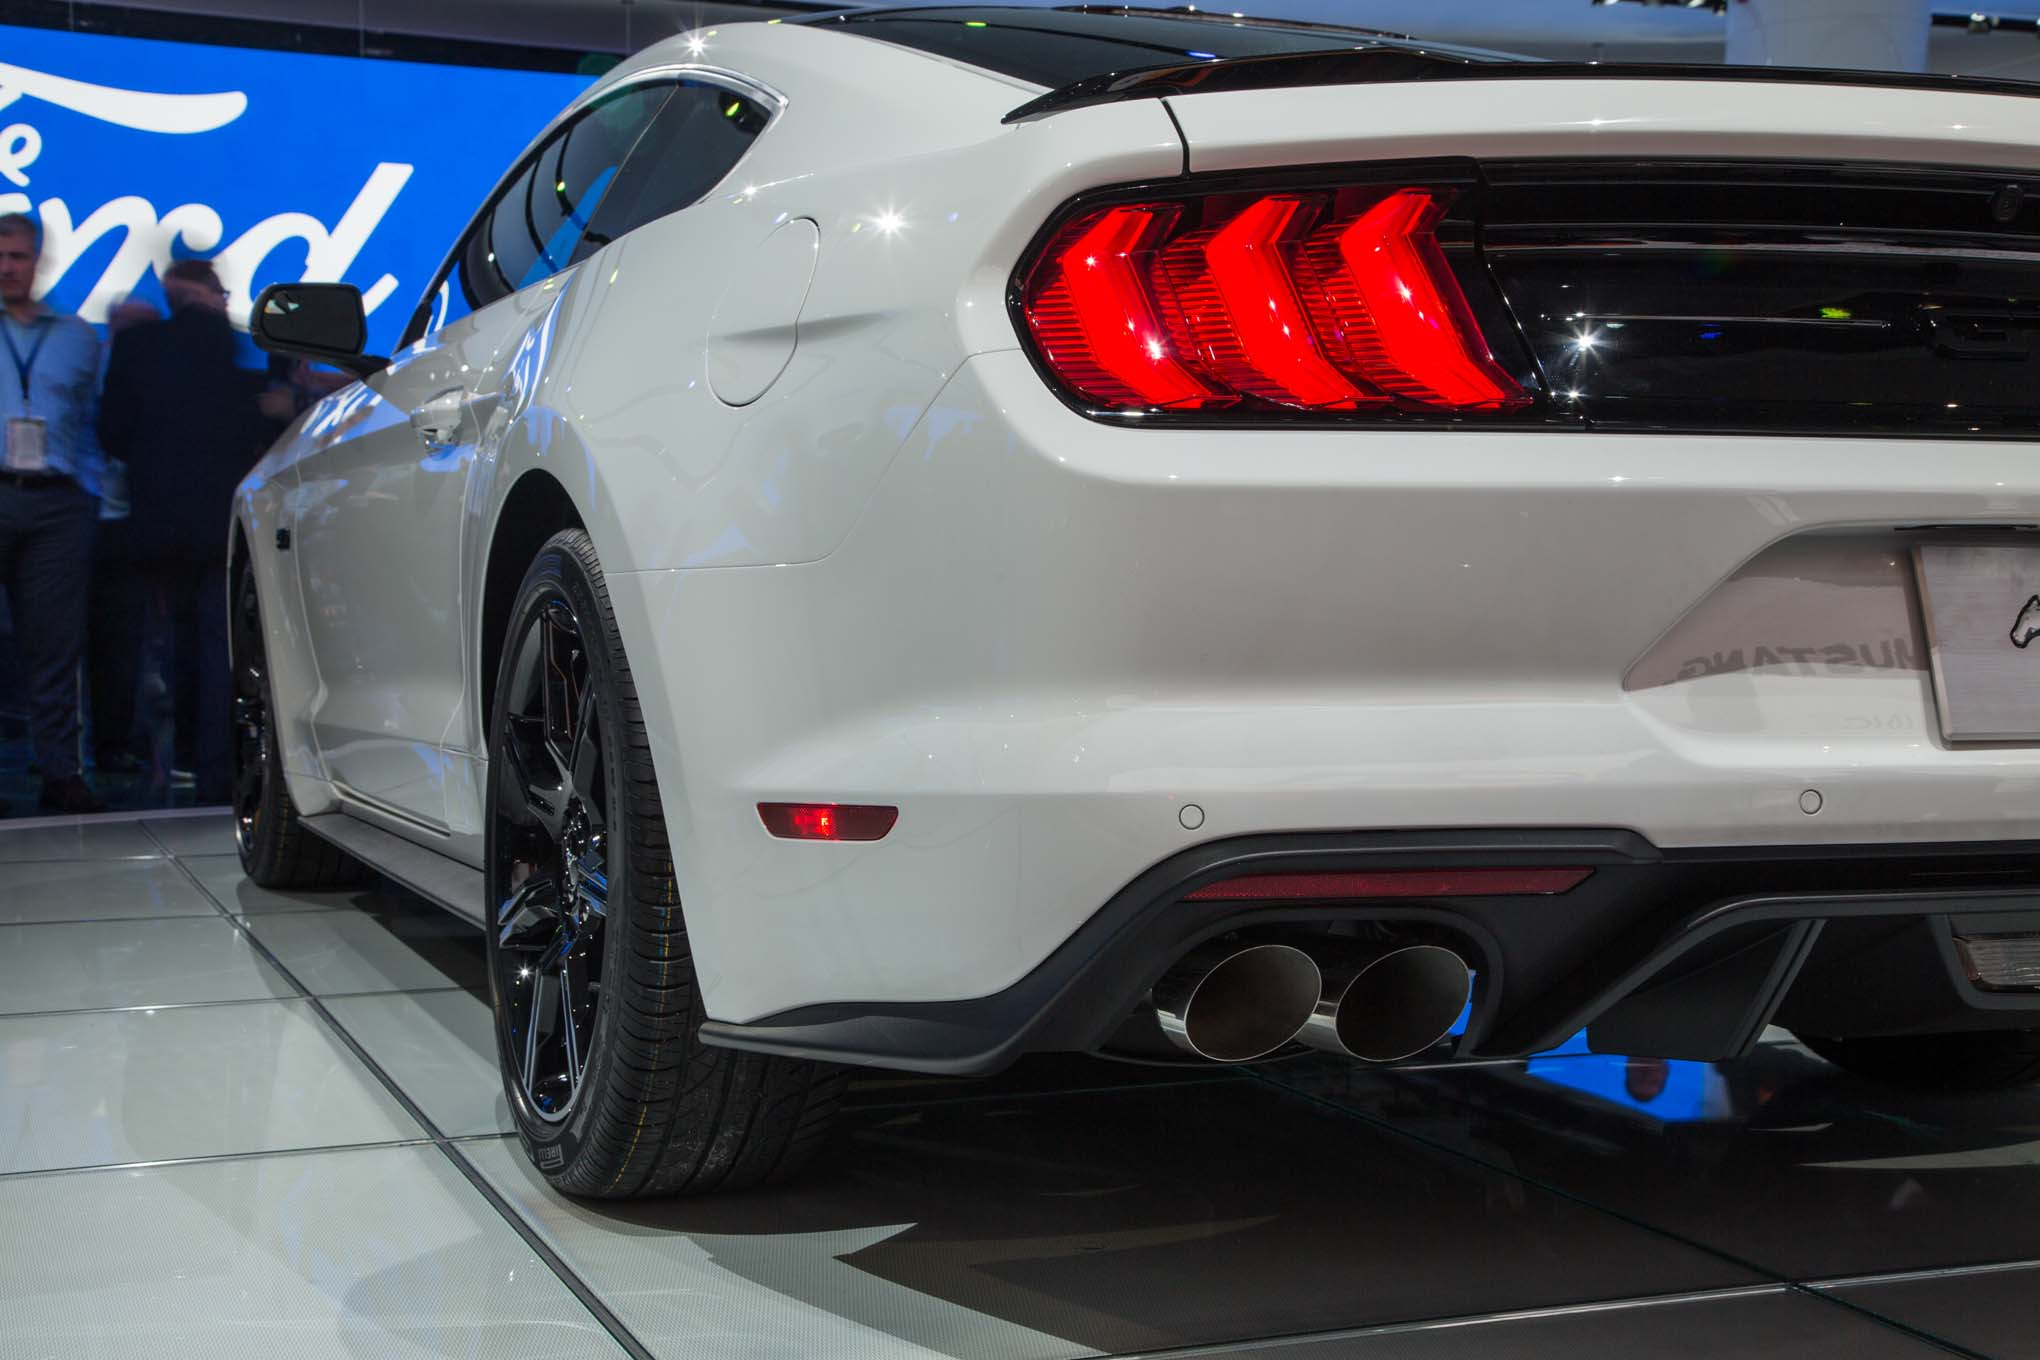 2018-Ford-Mustang-GT-rear-quarter-panel